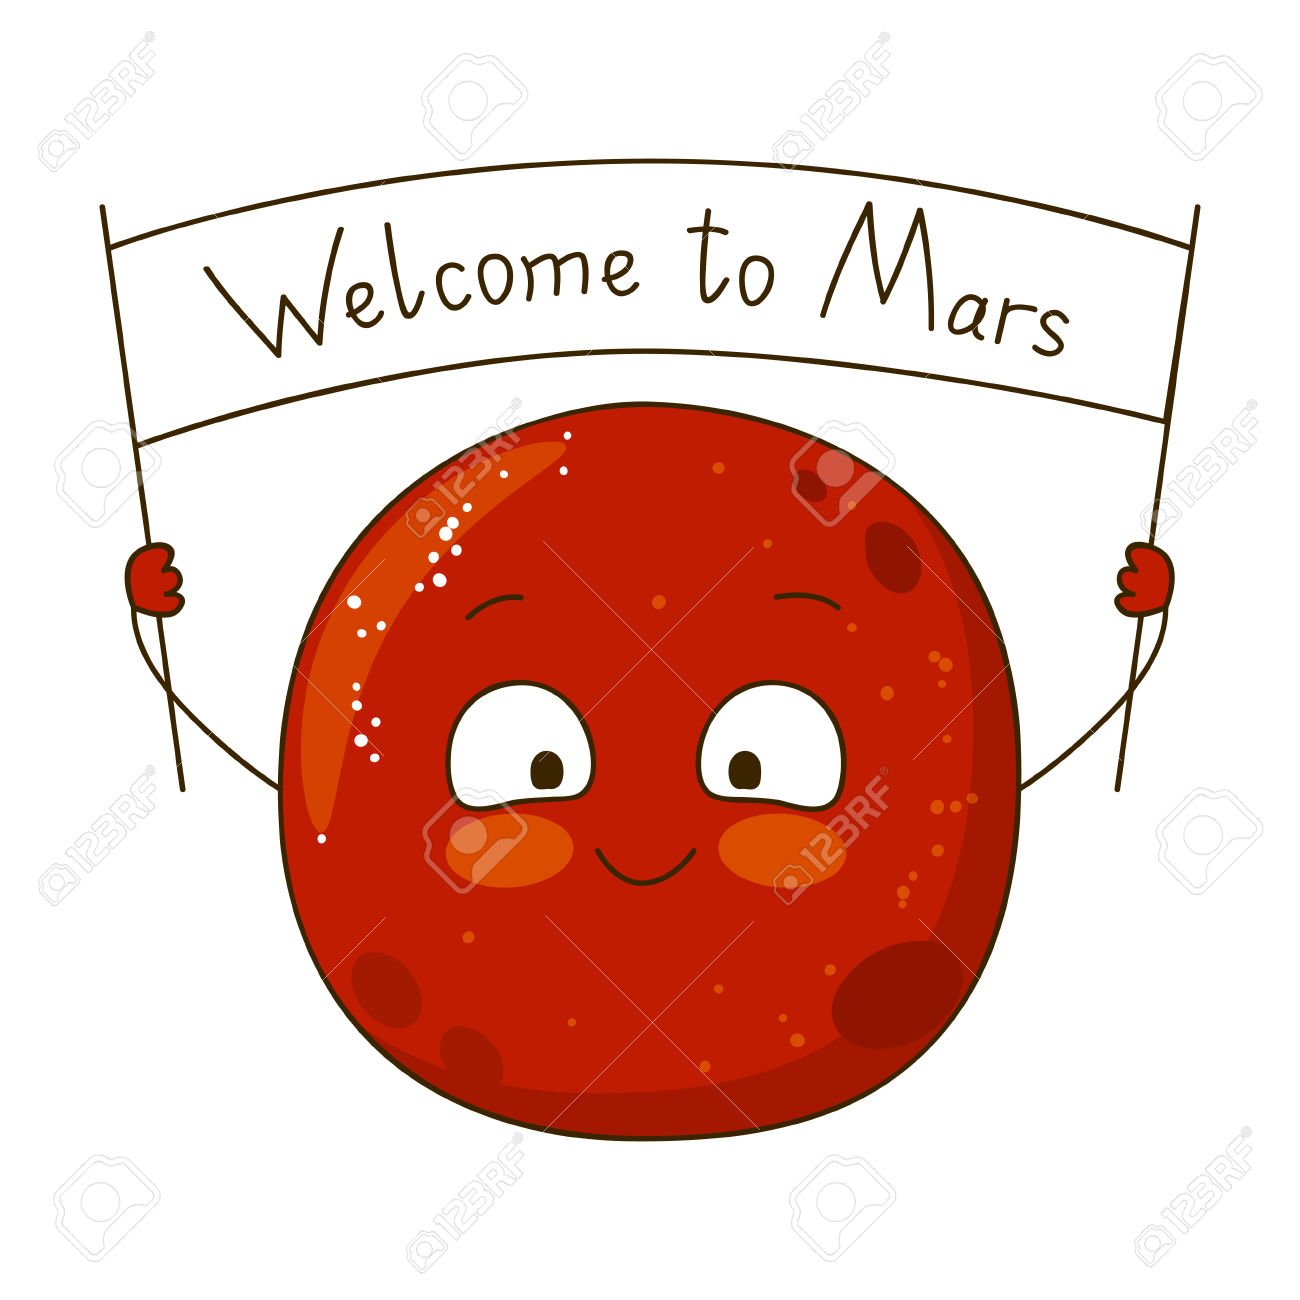 Mars clipart cute  emaze on and to